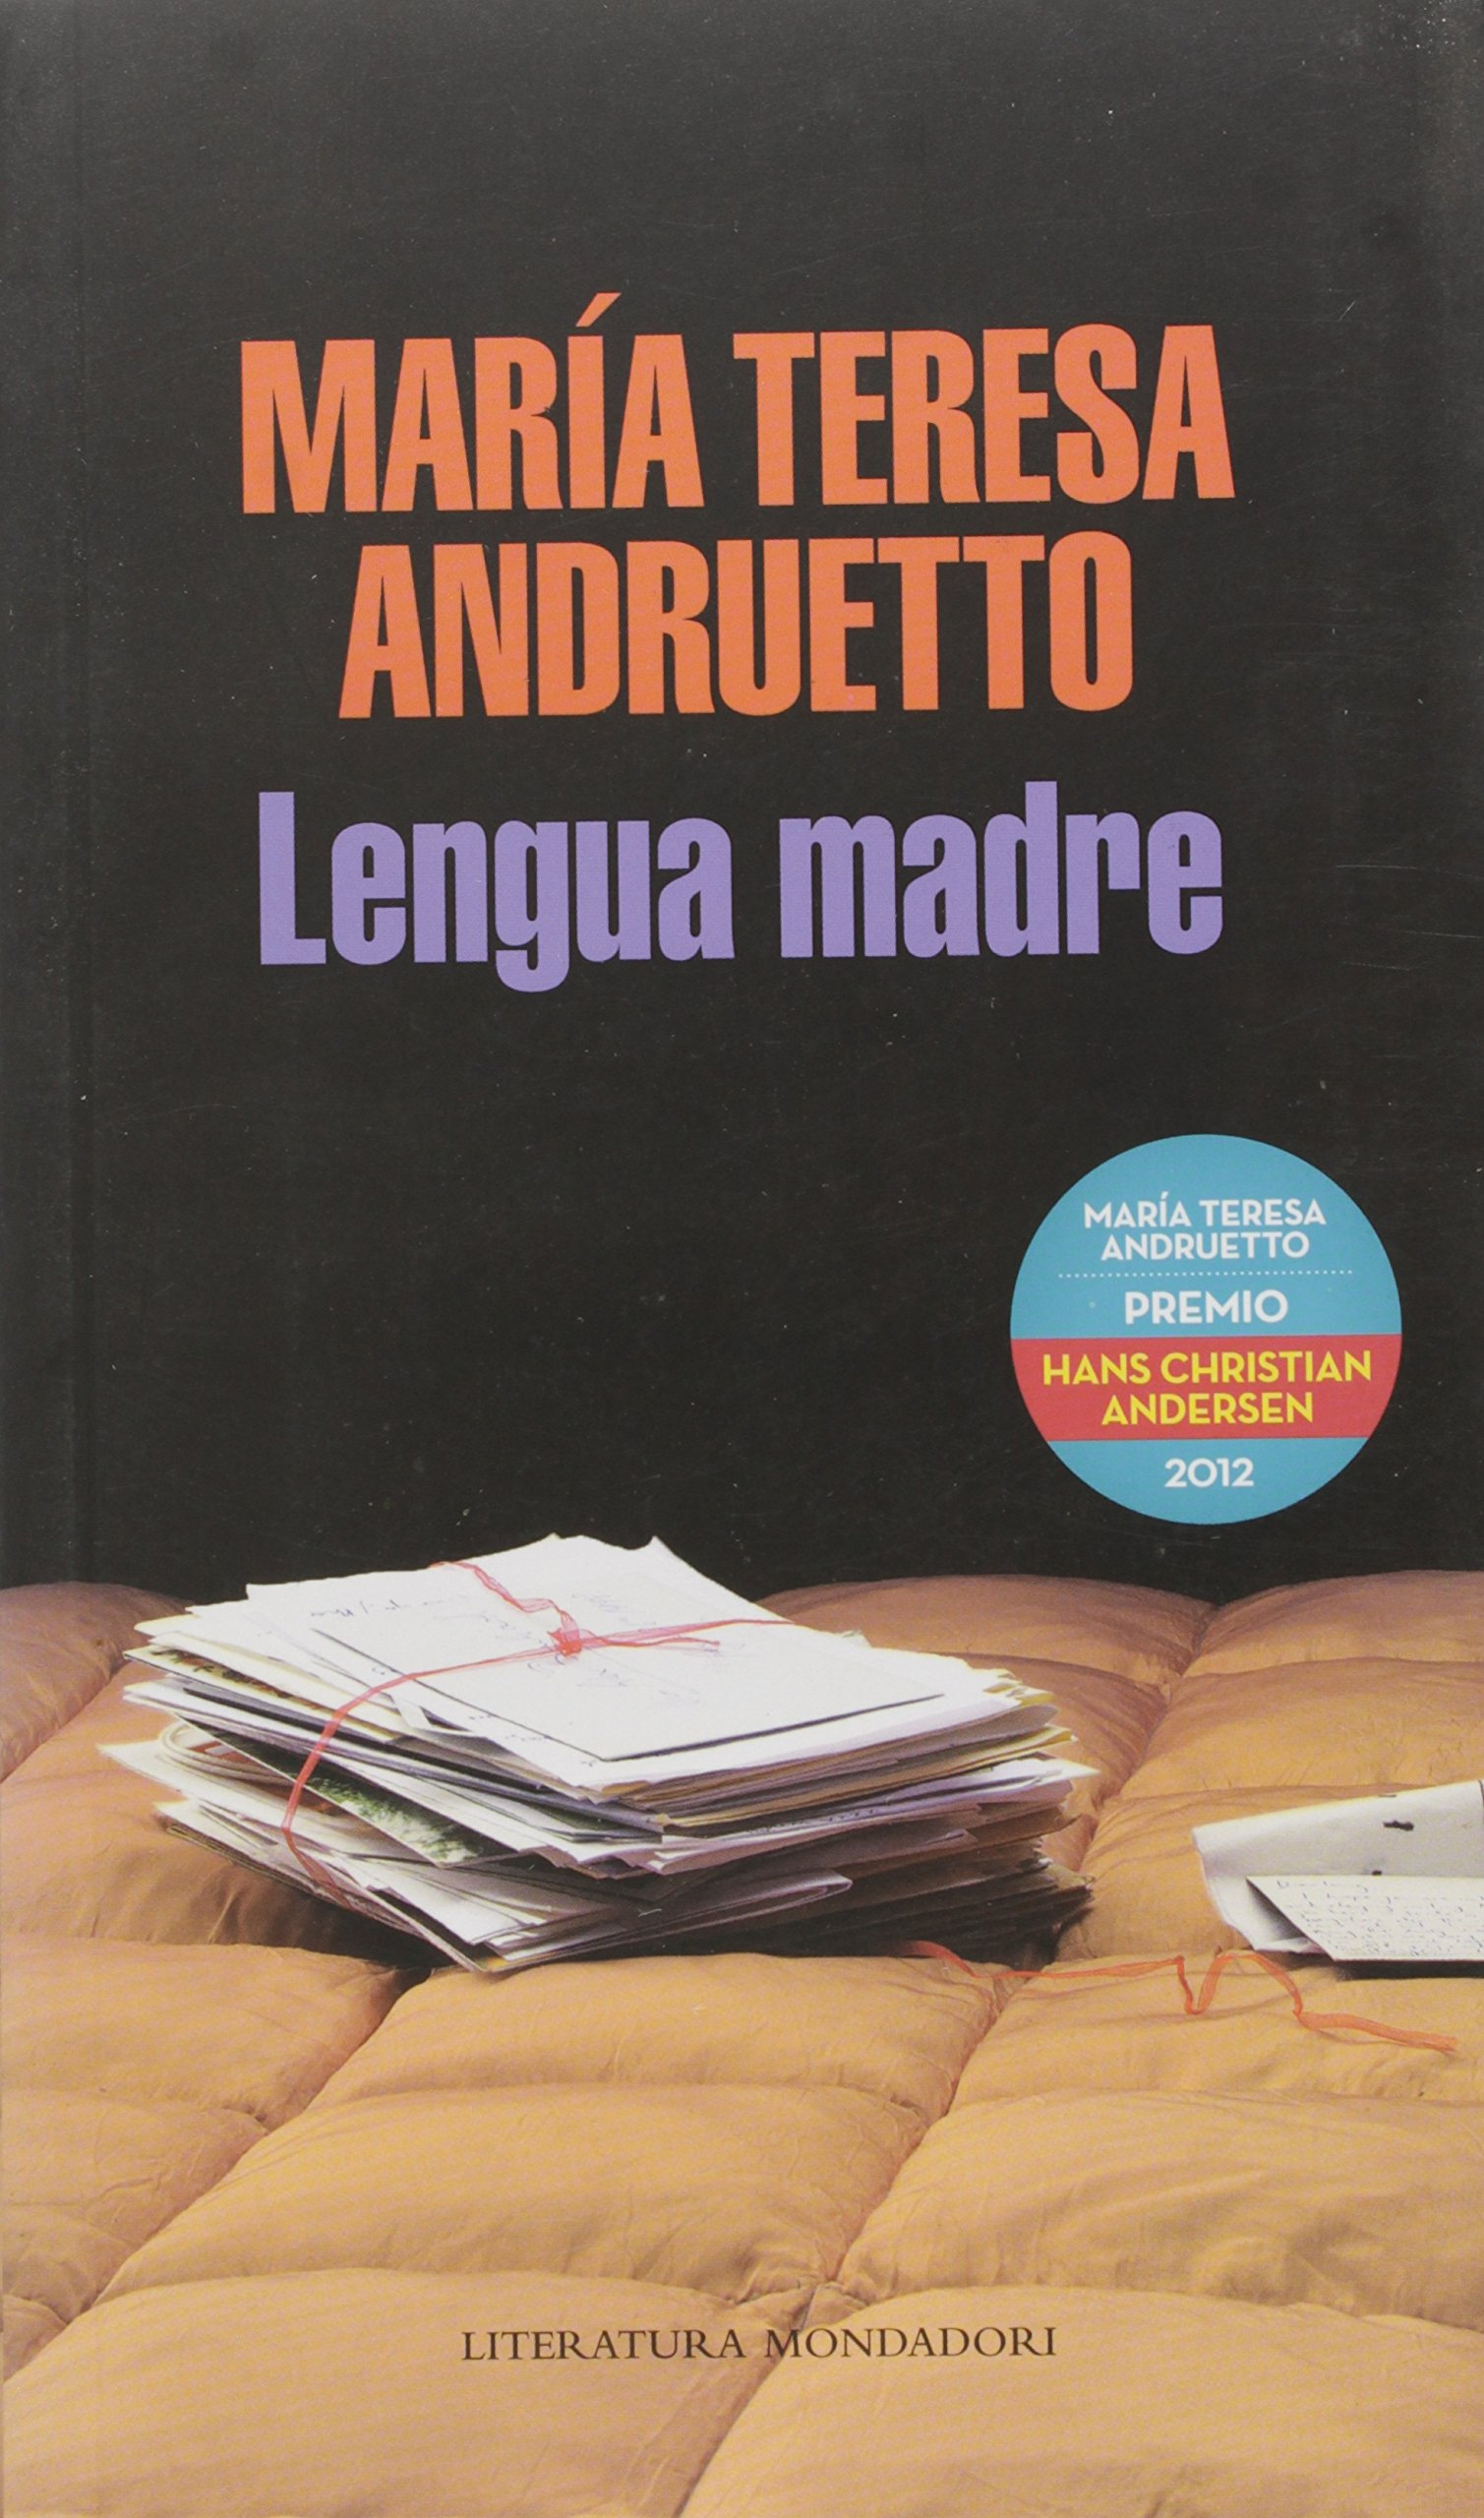 Lengua madre / Mother Tongue (Literatura Mondadori) (Spanish Edition): Maria Teresa Andruetto: 9789876580373: Amazon.com: Books